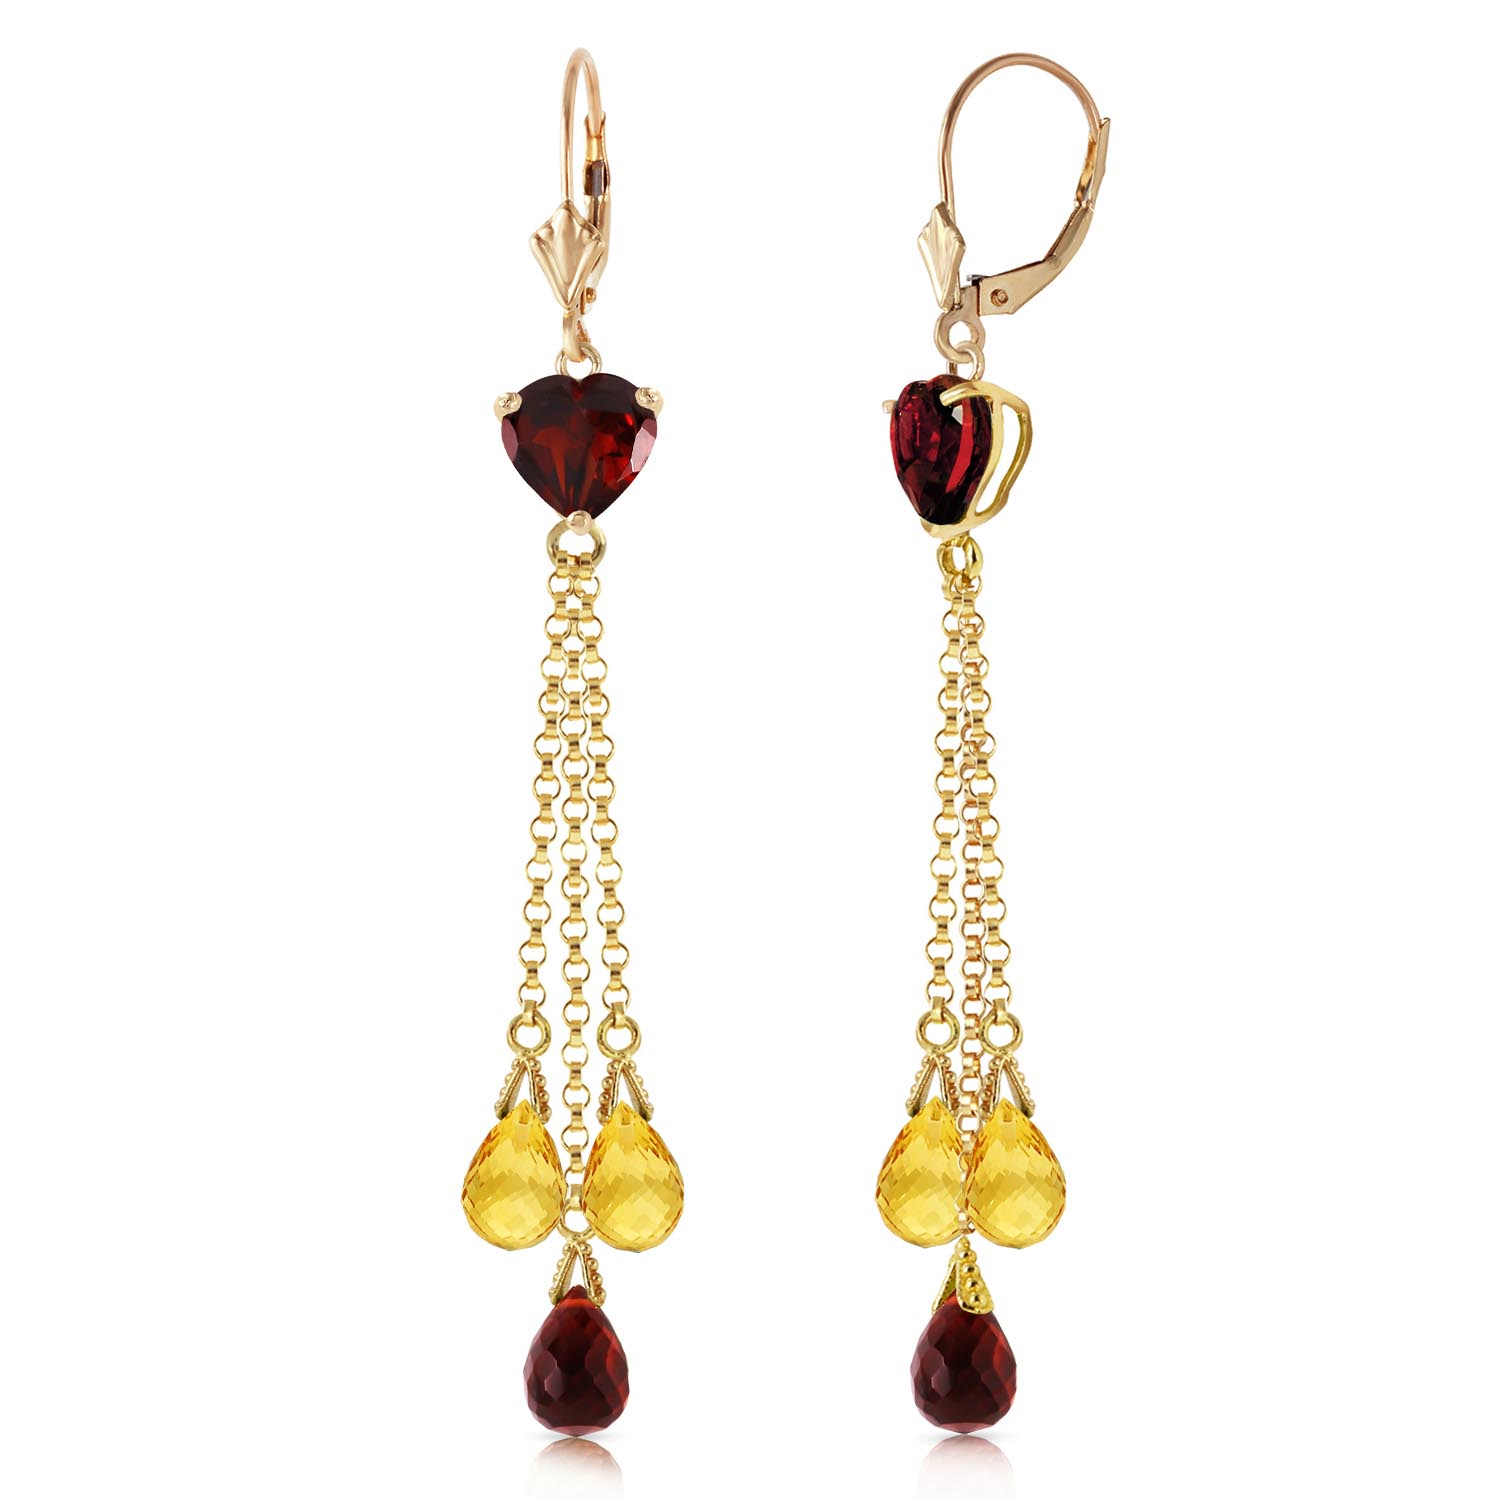 Garnet and Citrine Vestige Drop Earrings 9.5ctw in 9ct Gold